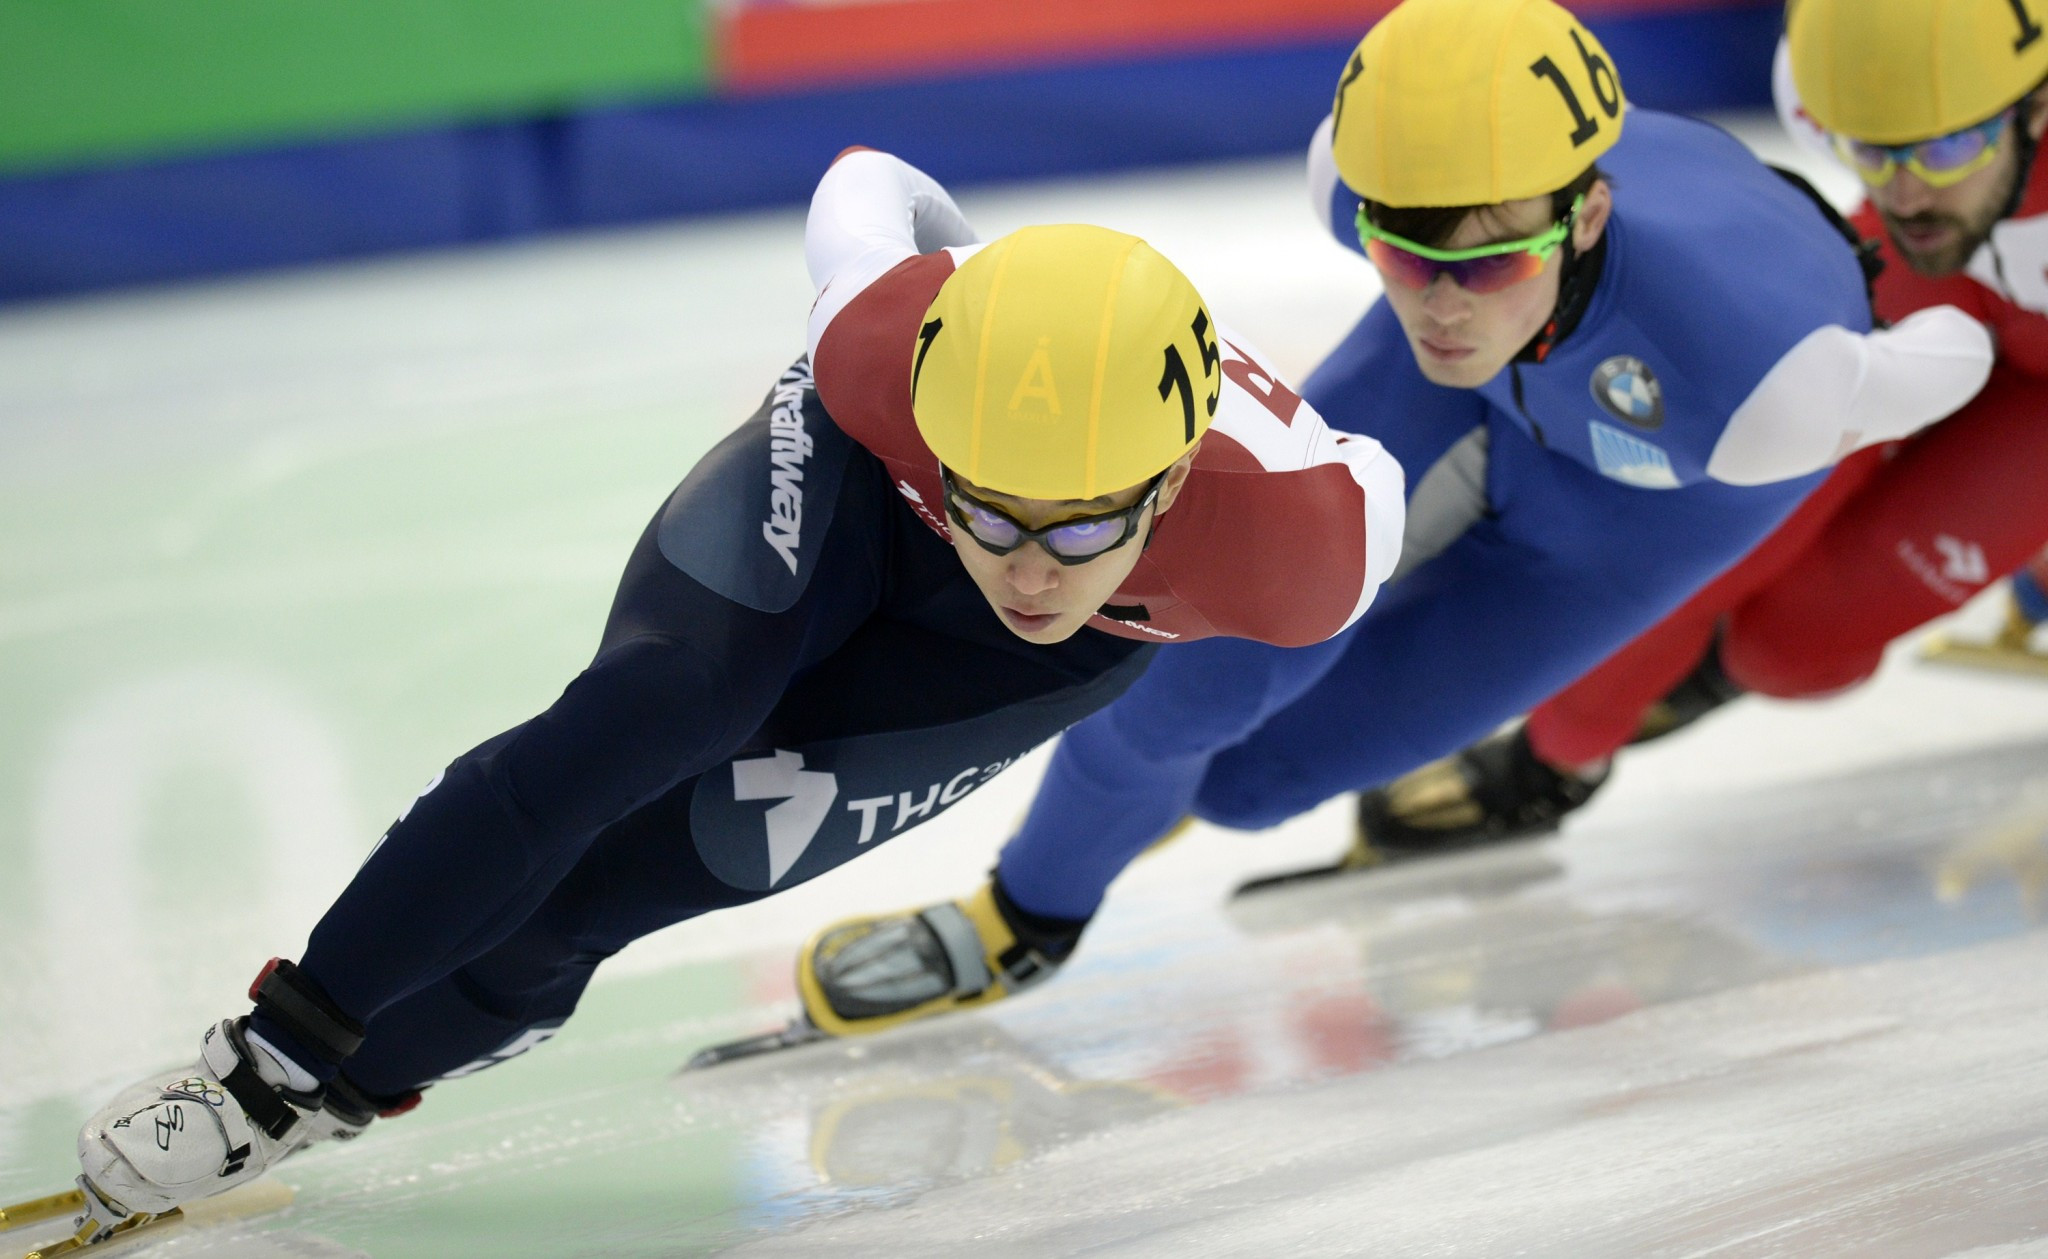 Six-time Olympic short track champion Ahn named in Russia's Pyeongchang 2018 team